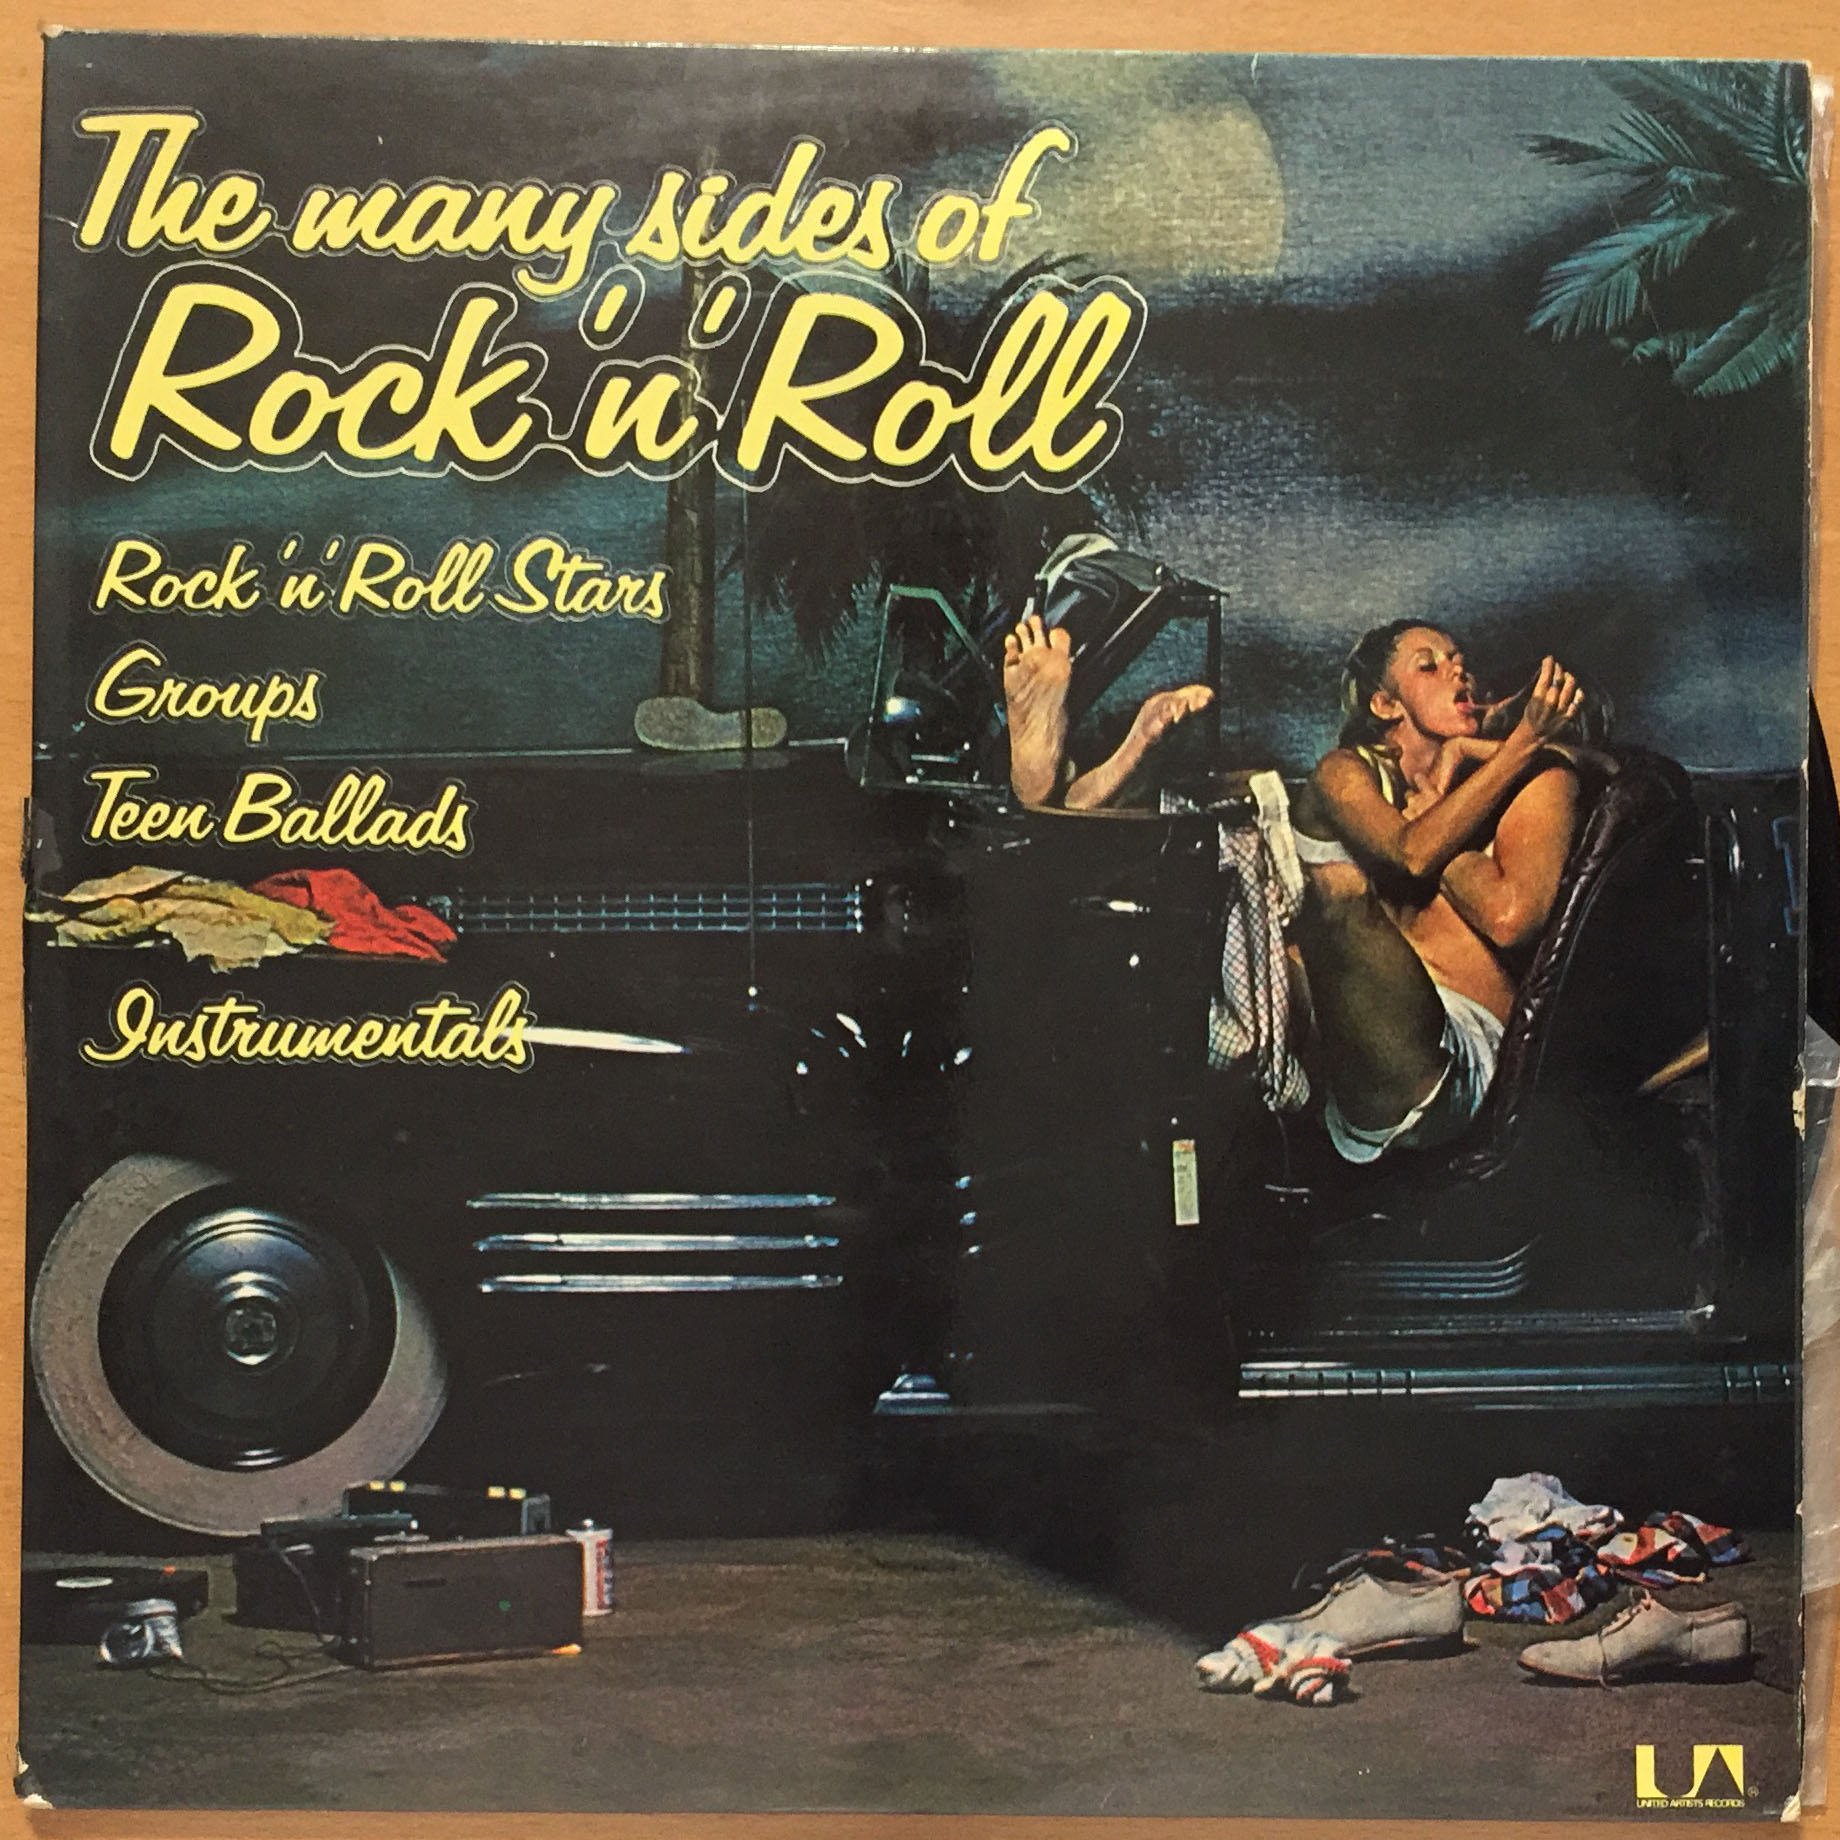 VVAA - The many sides of Rock`n`Roll. 1975 United Artist